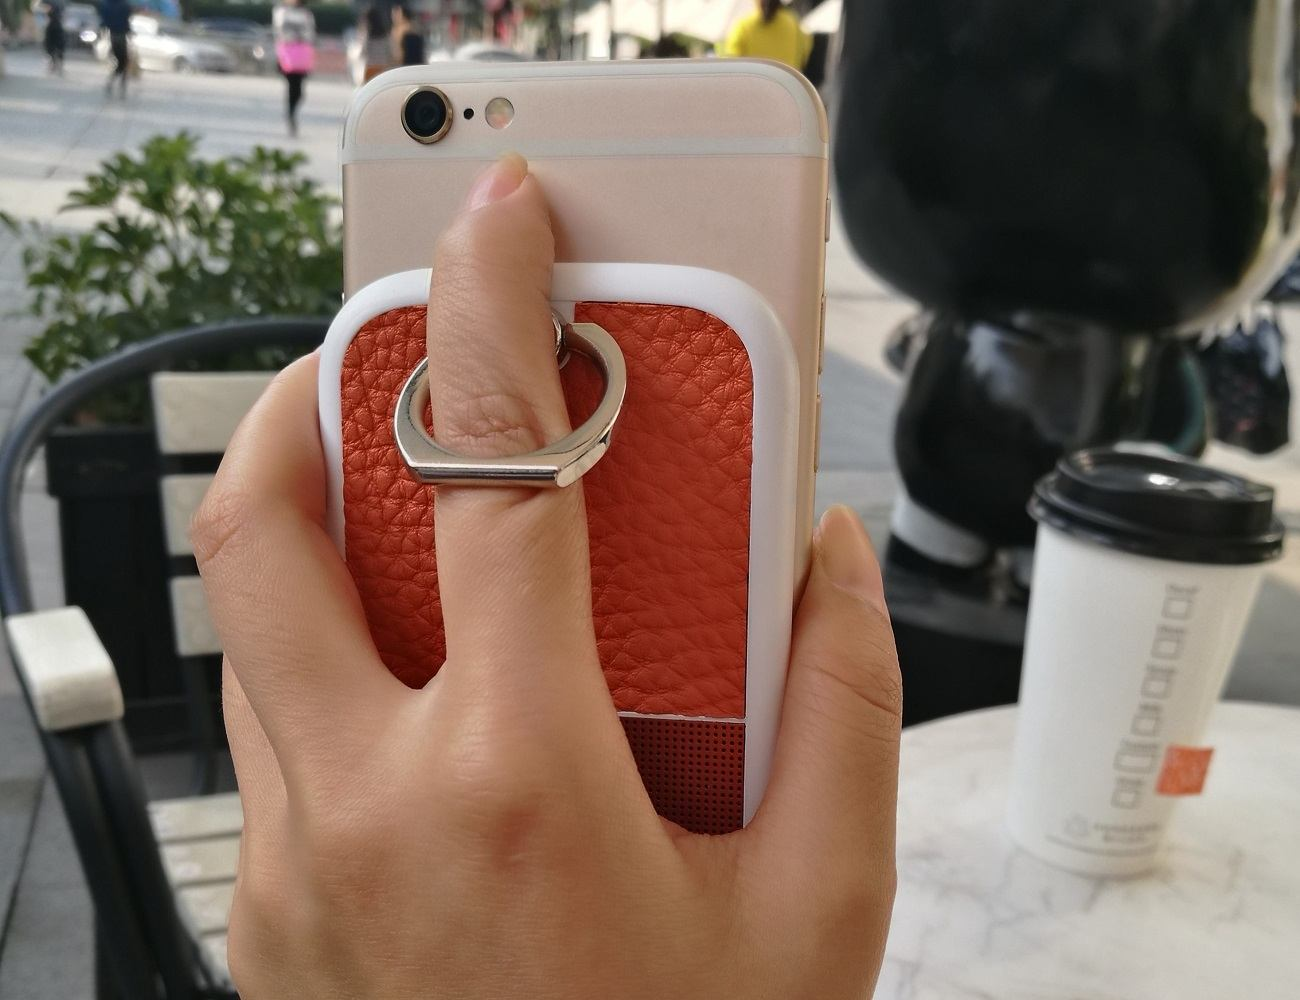 The CELLO Smartphone Battery Stand Attaches Right to Your Device